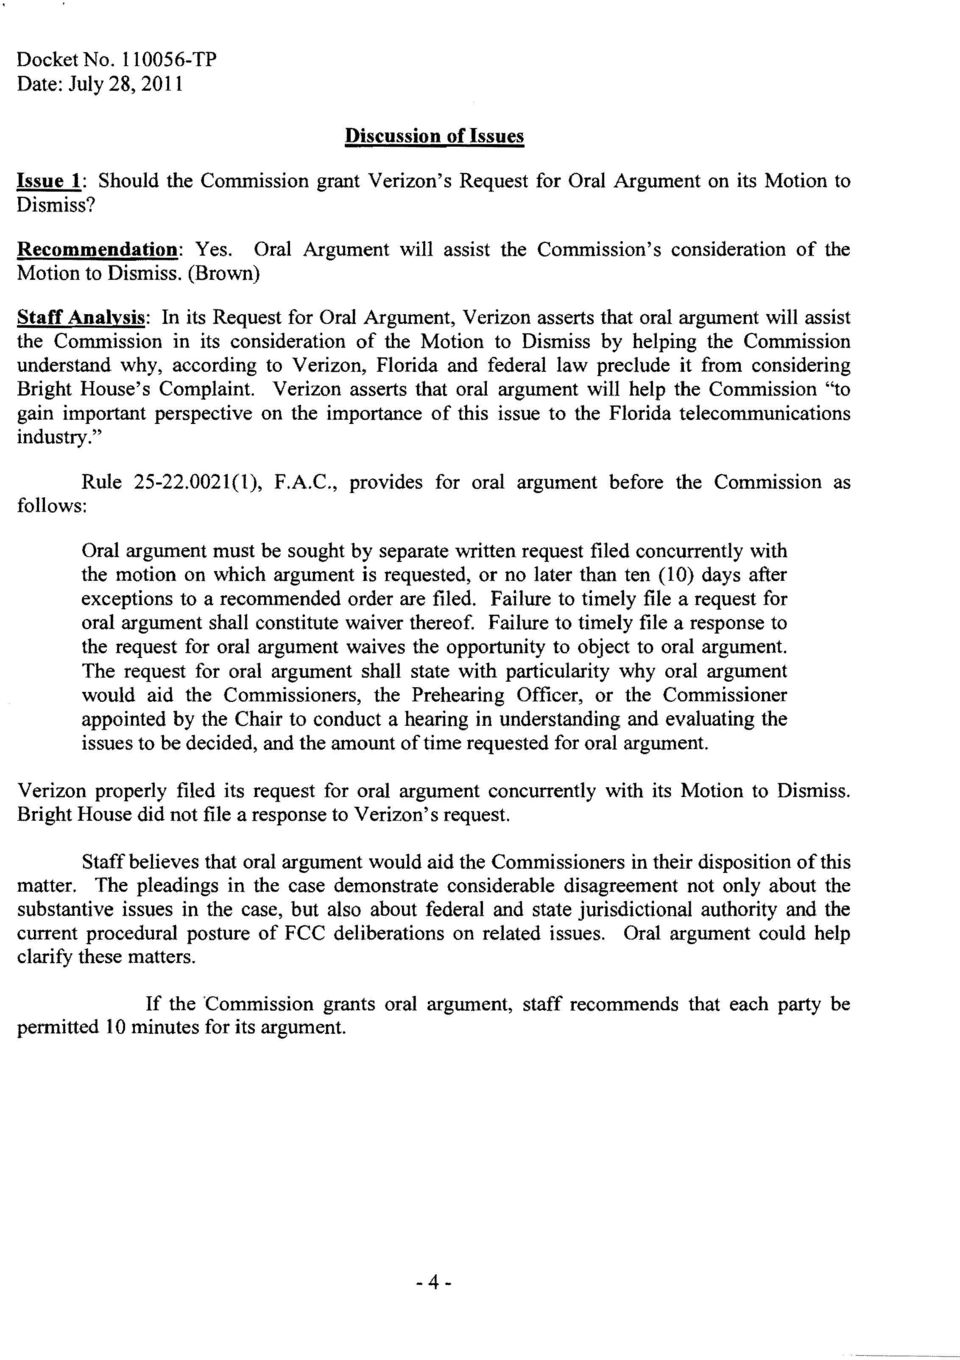 (Brown) Staff Analysis: In its Request for Oral Argument, Verizon asserts that oral argument will assist the Commission in its consideration of the Motion to Dismiss by helping the Commission